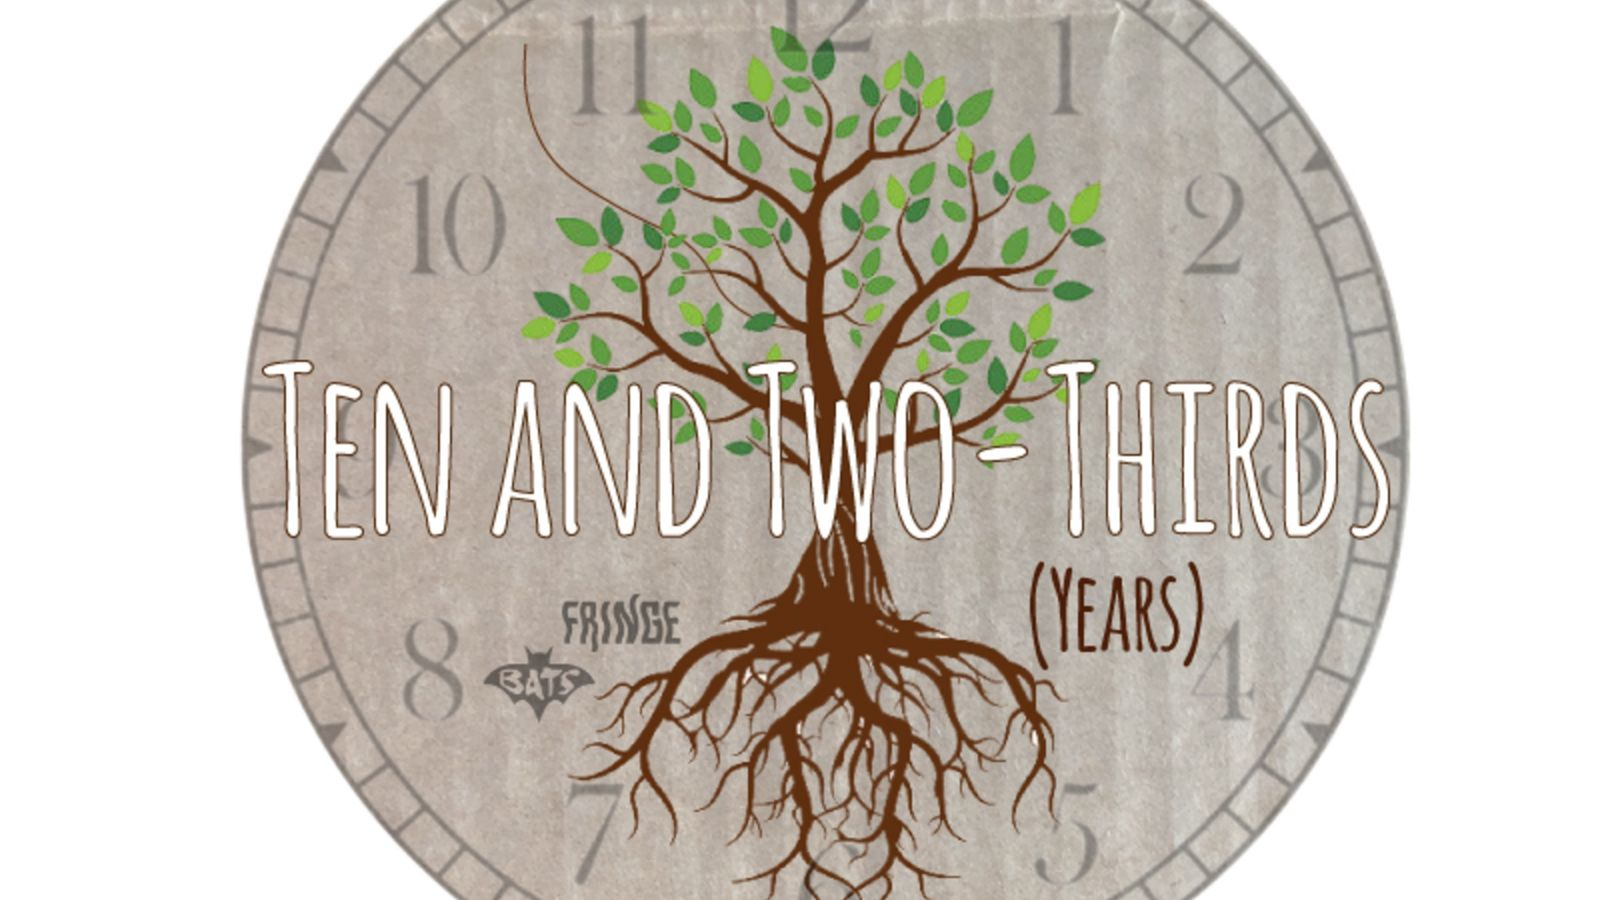 Ten and Two Thirds (Years)